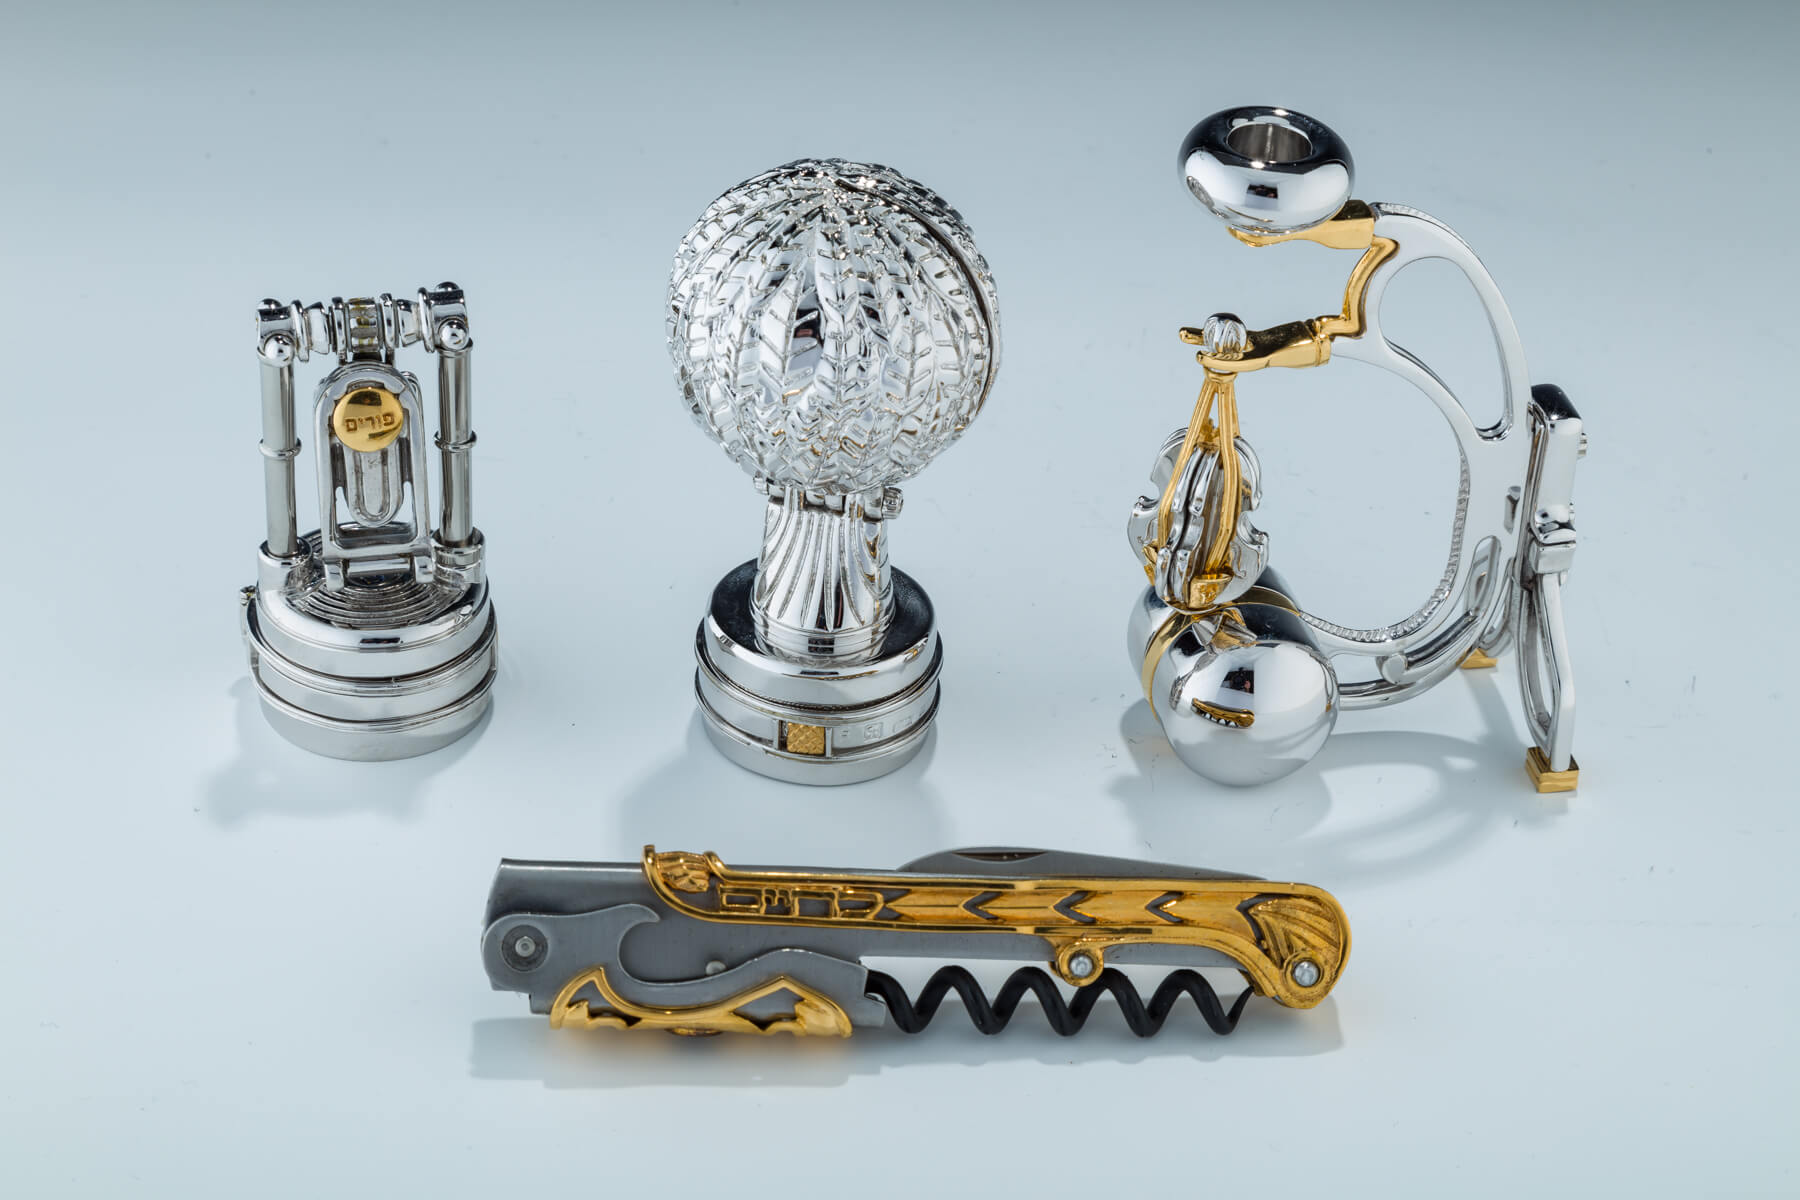 96. A Group Of Four Judaica Items By Swed Master Silversmiths